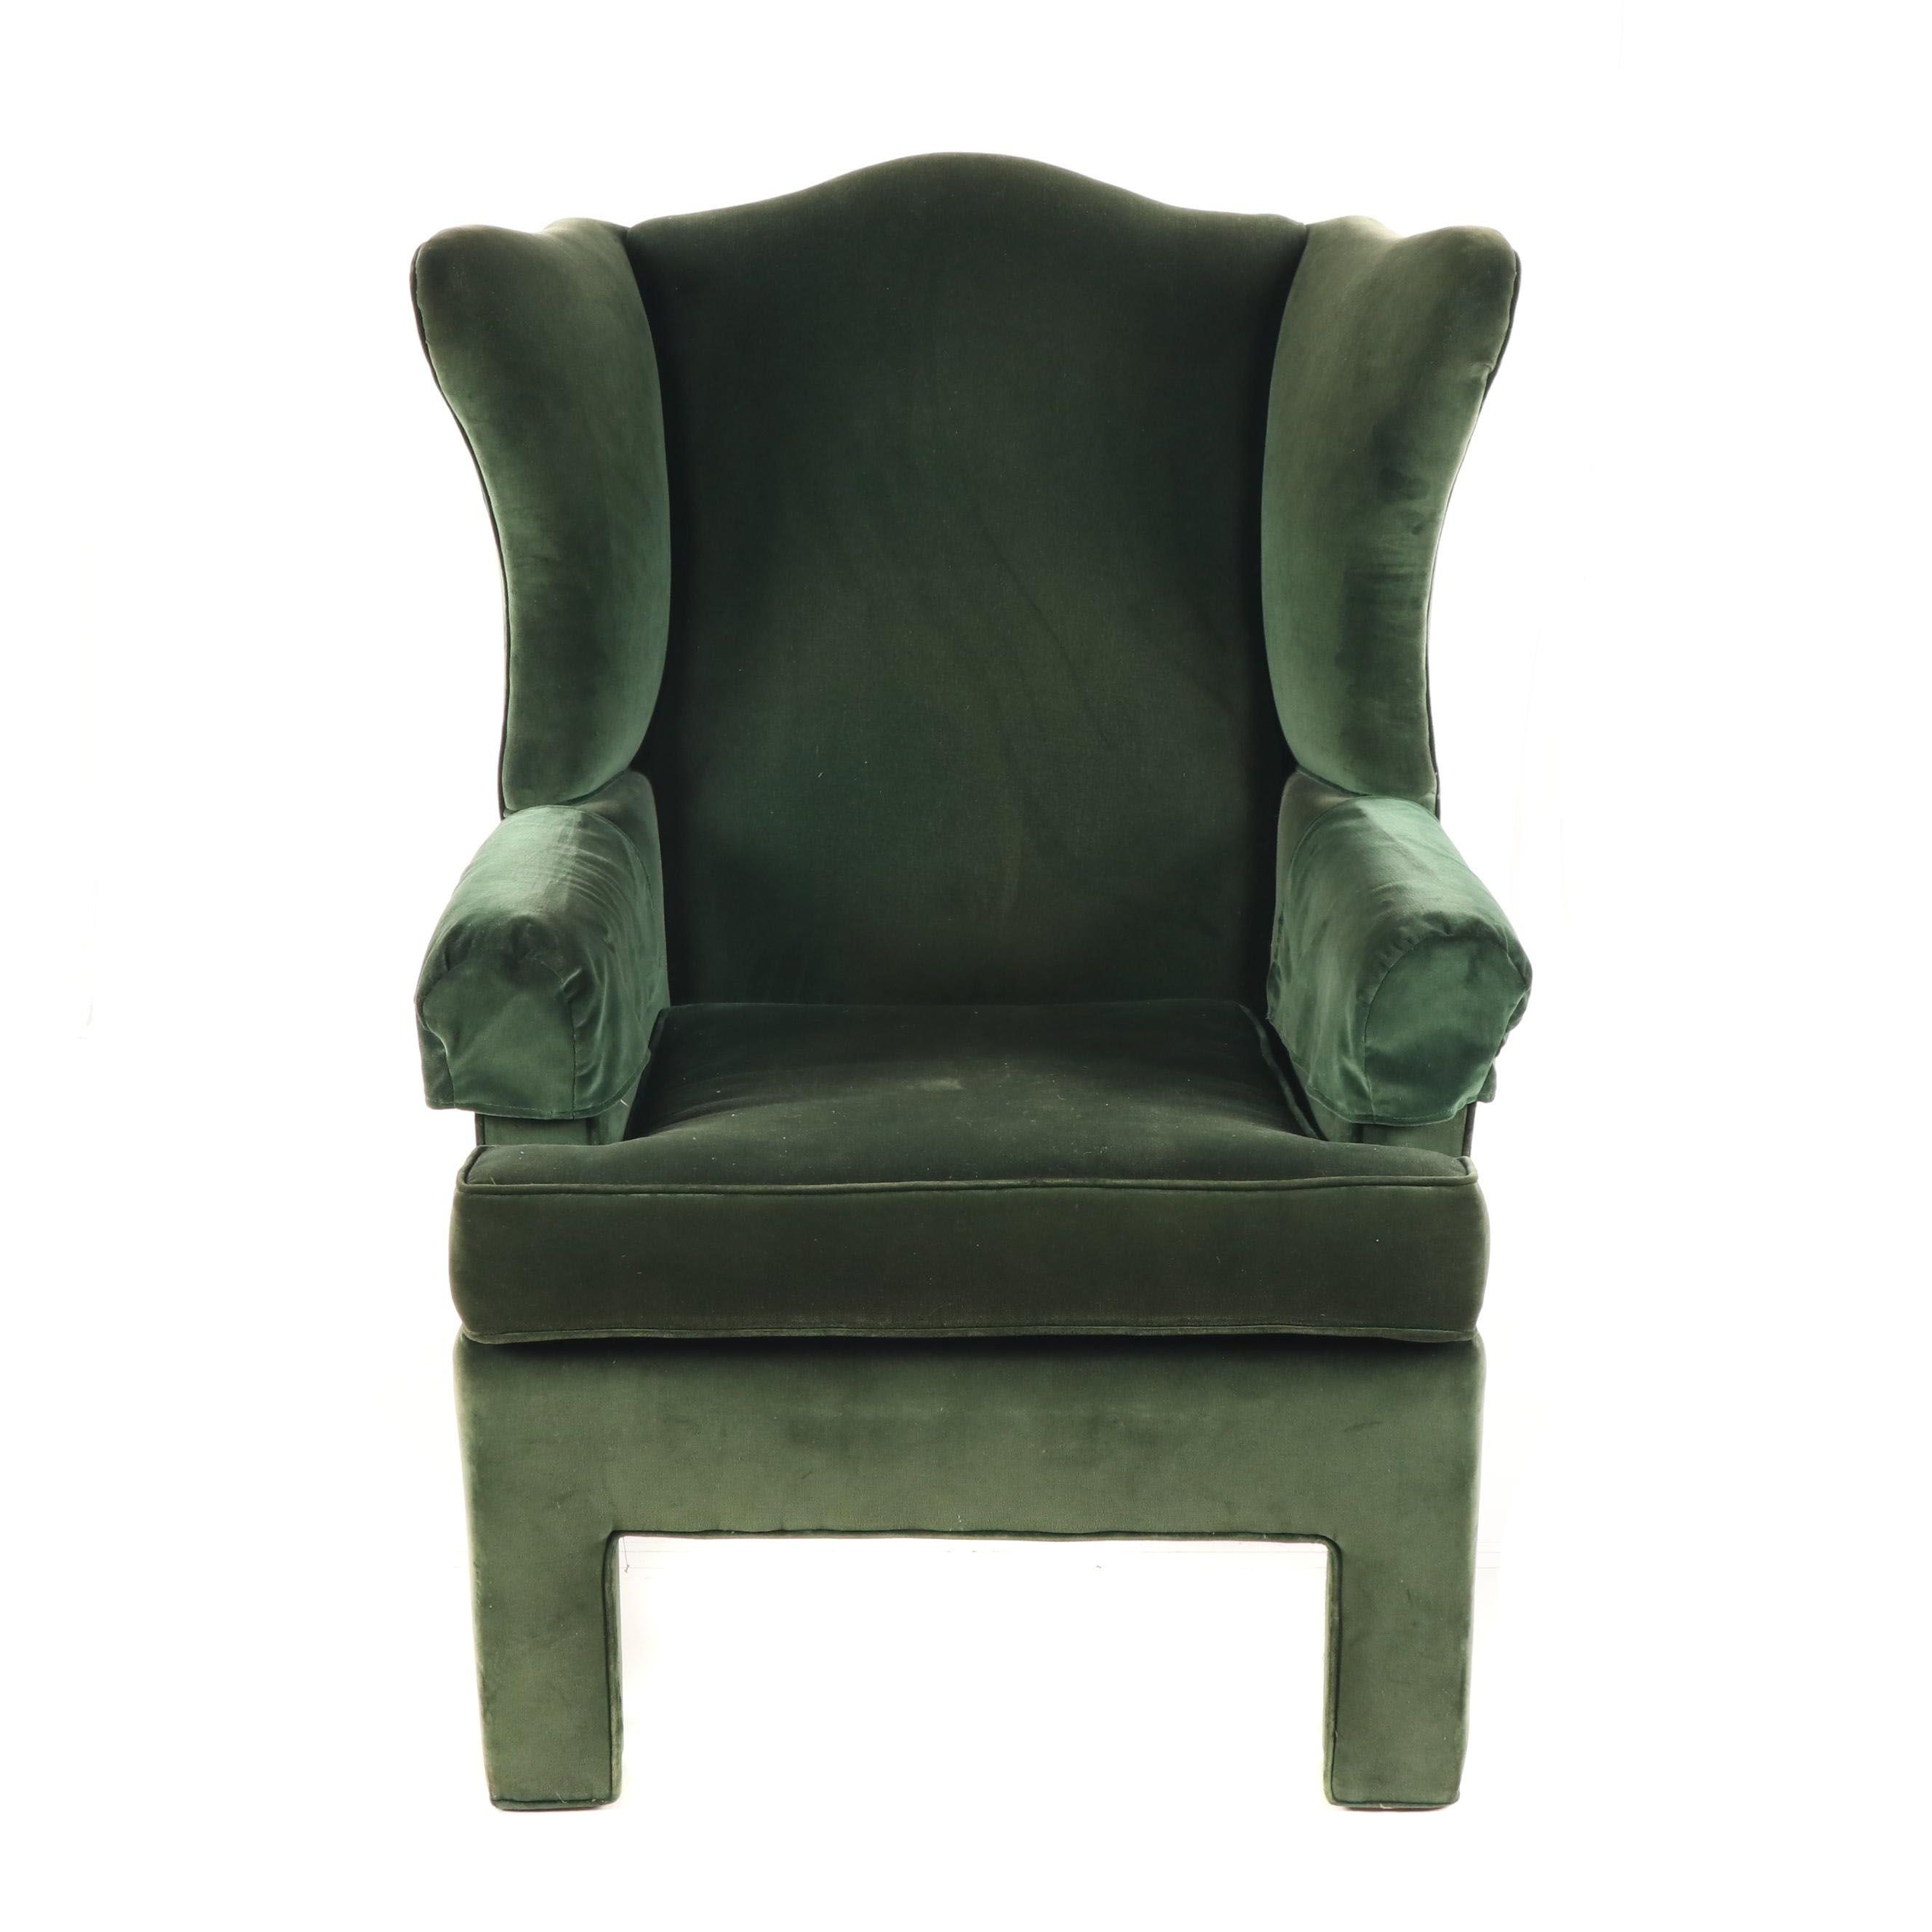 Upholstered Wingback Armchair by Sara Scott Furniture, Late 20th Century